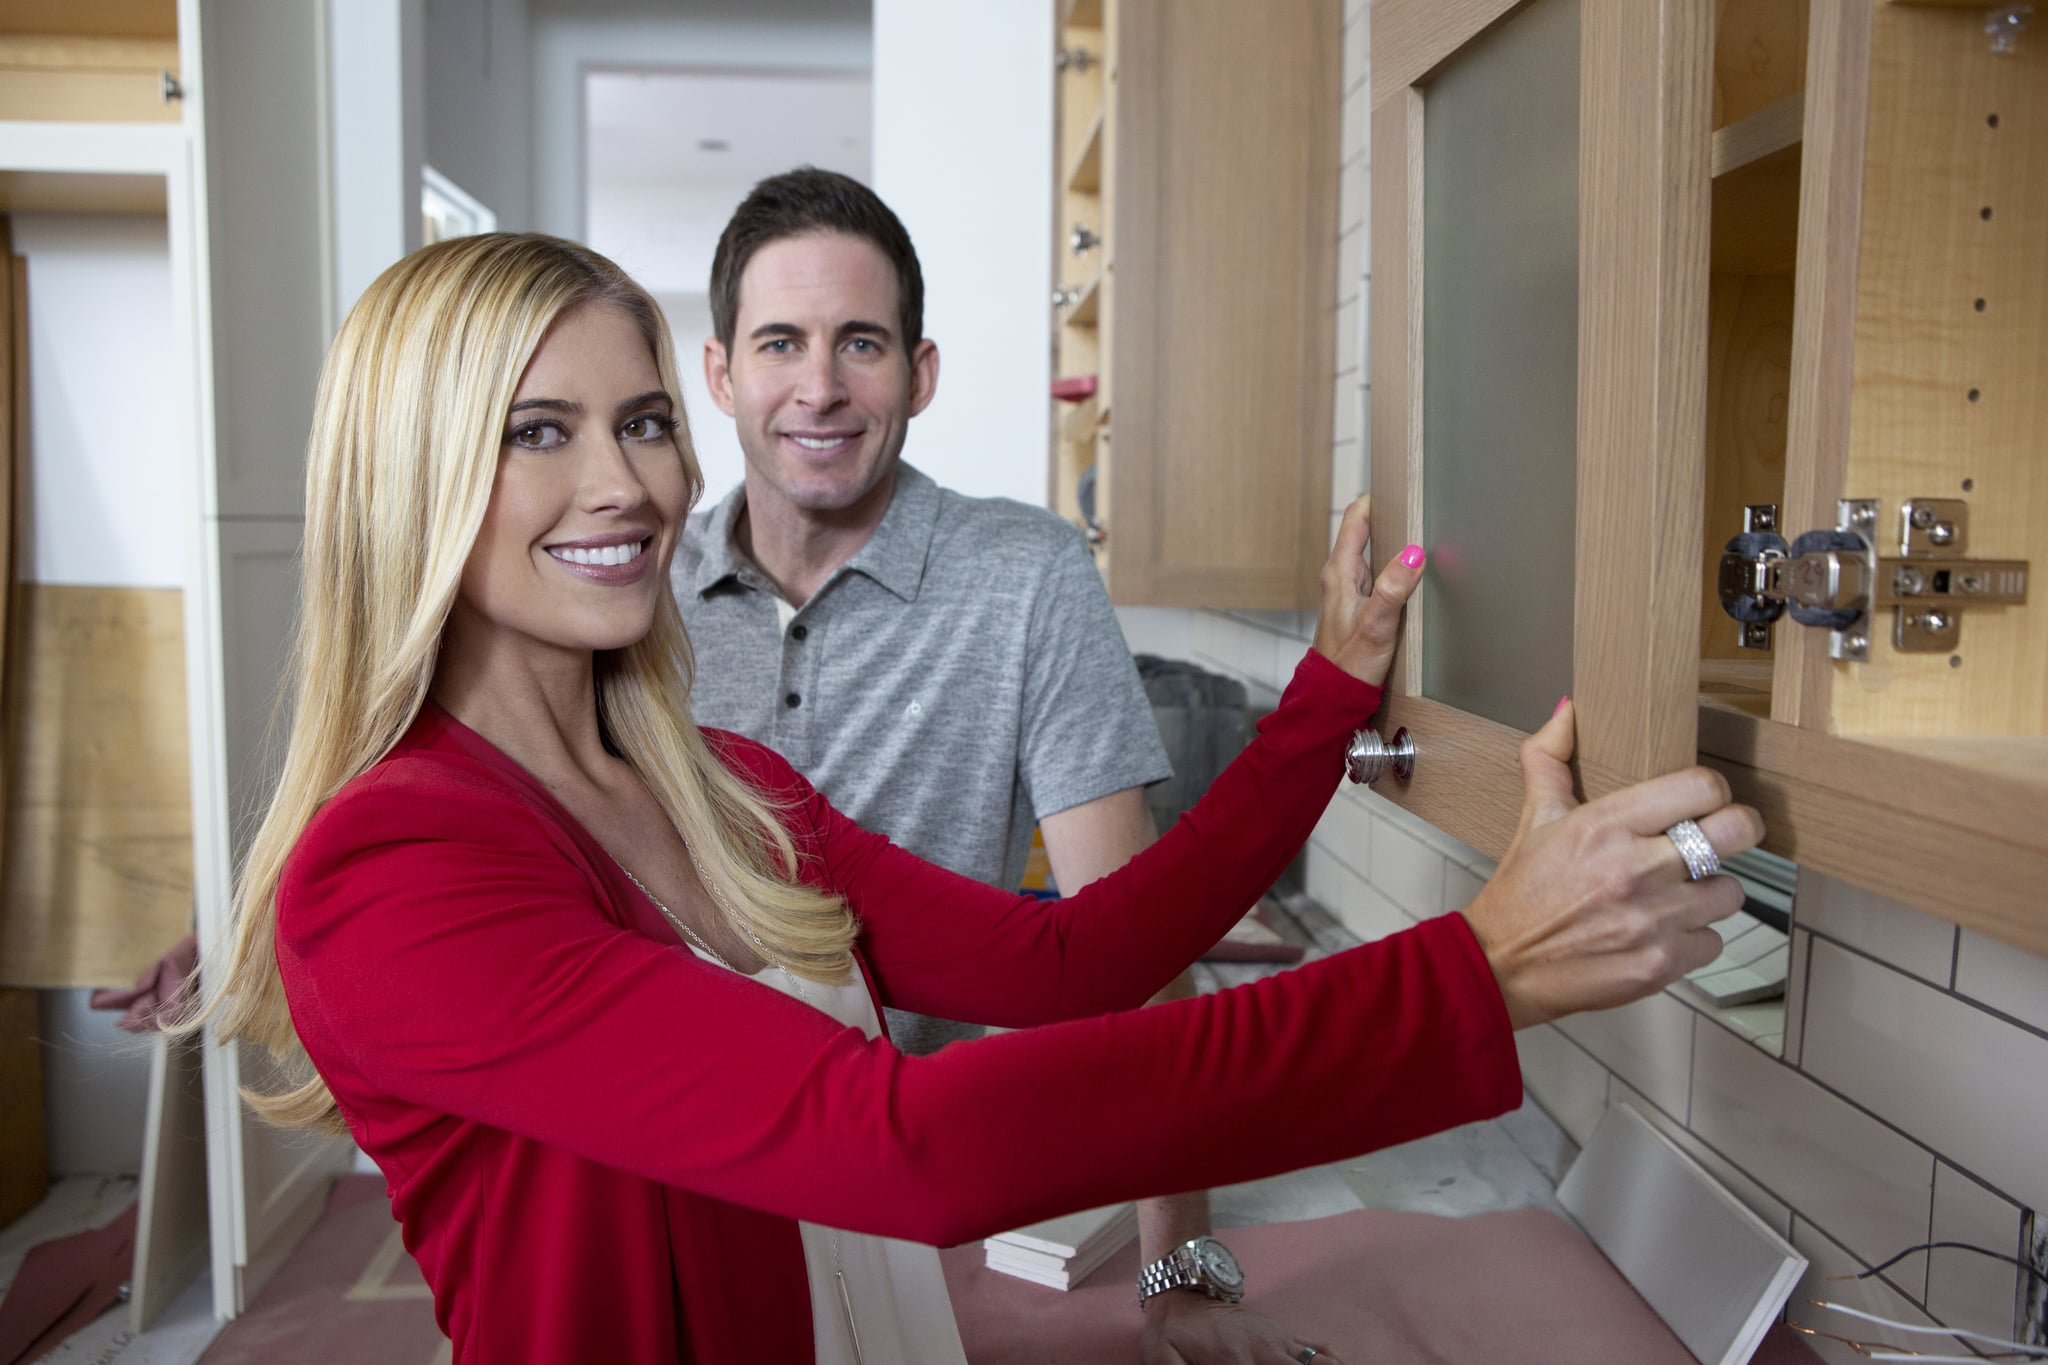 Los Angeles,  2017: 'Flip or Flop' hosts pose for a portrait session in November 2017 in Los Angeles, California,  (Photo by Aaron Rapoport/Corbis/Getty Images)